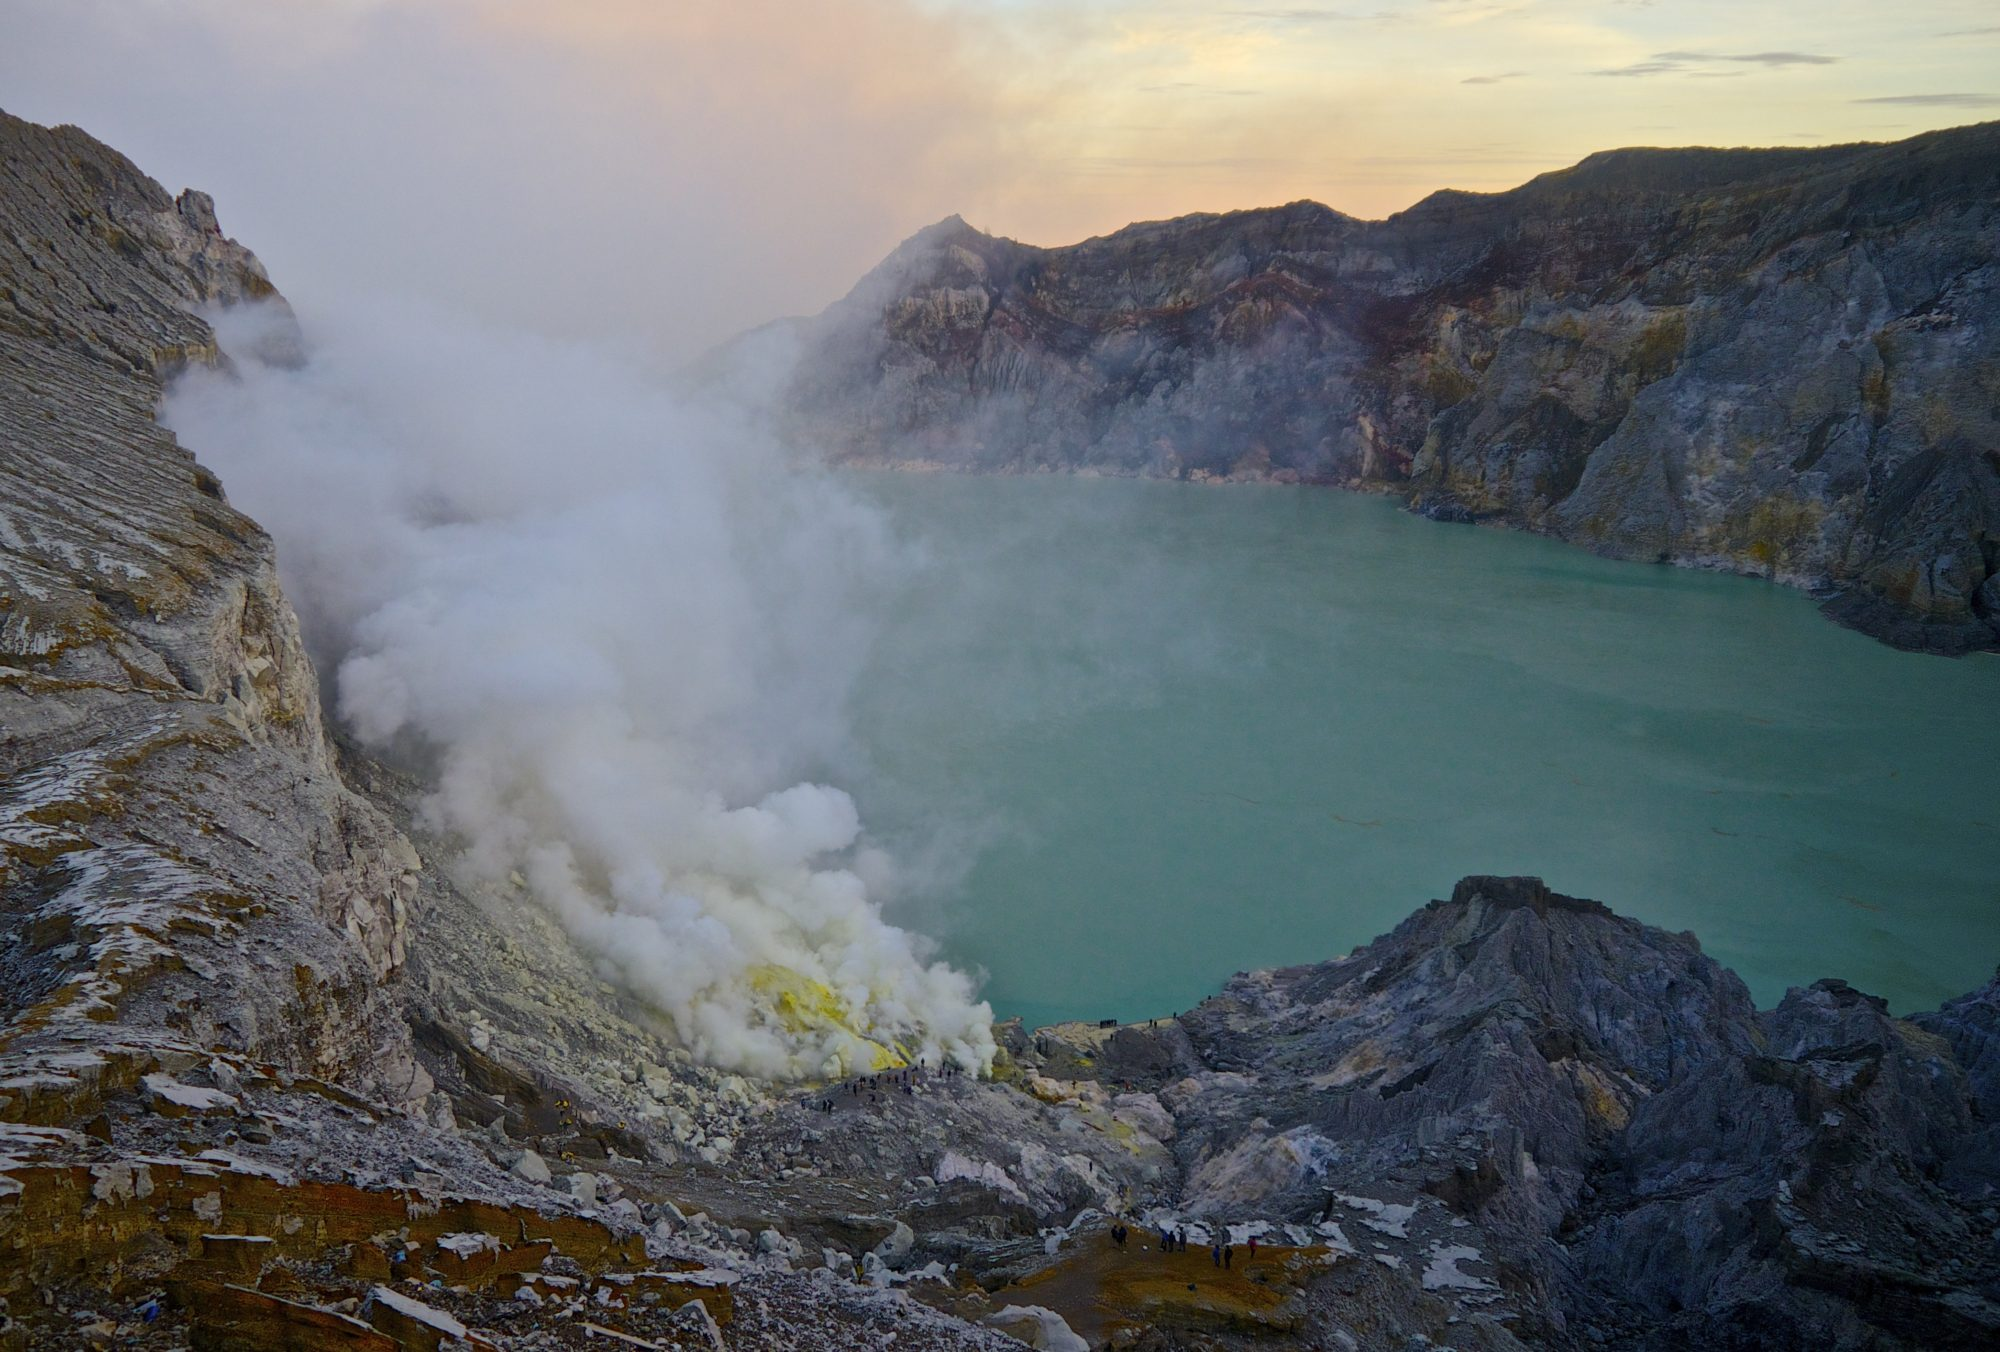 Kawah Ijen Volcano Blue Fire And Sulfur Miners Erika S